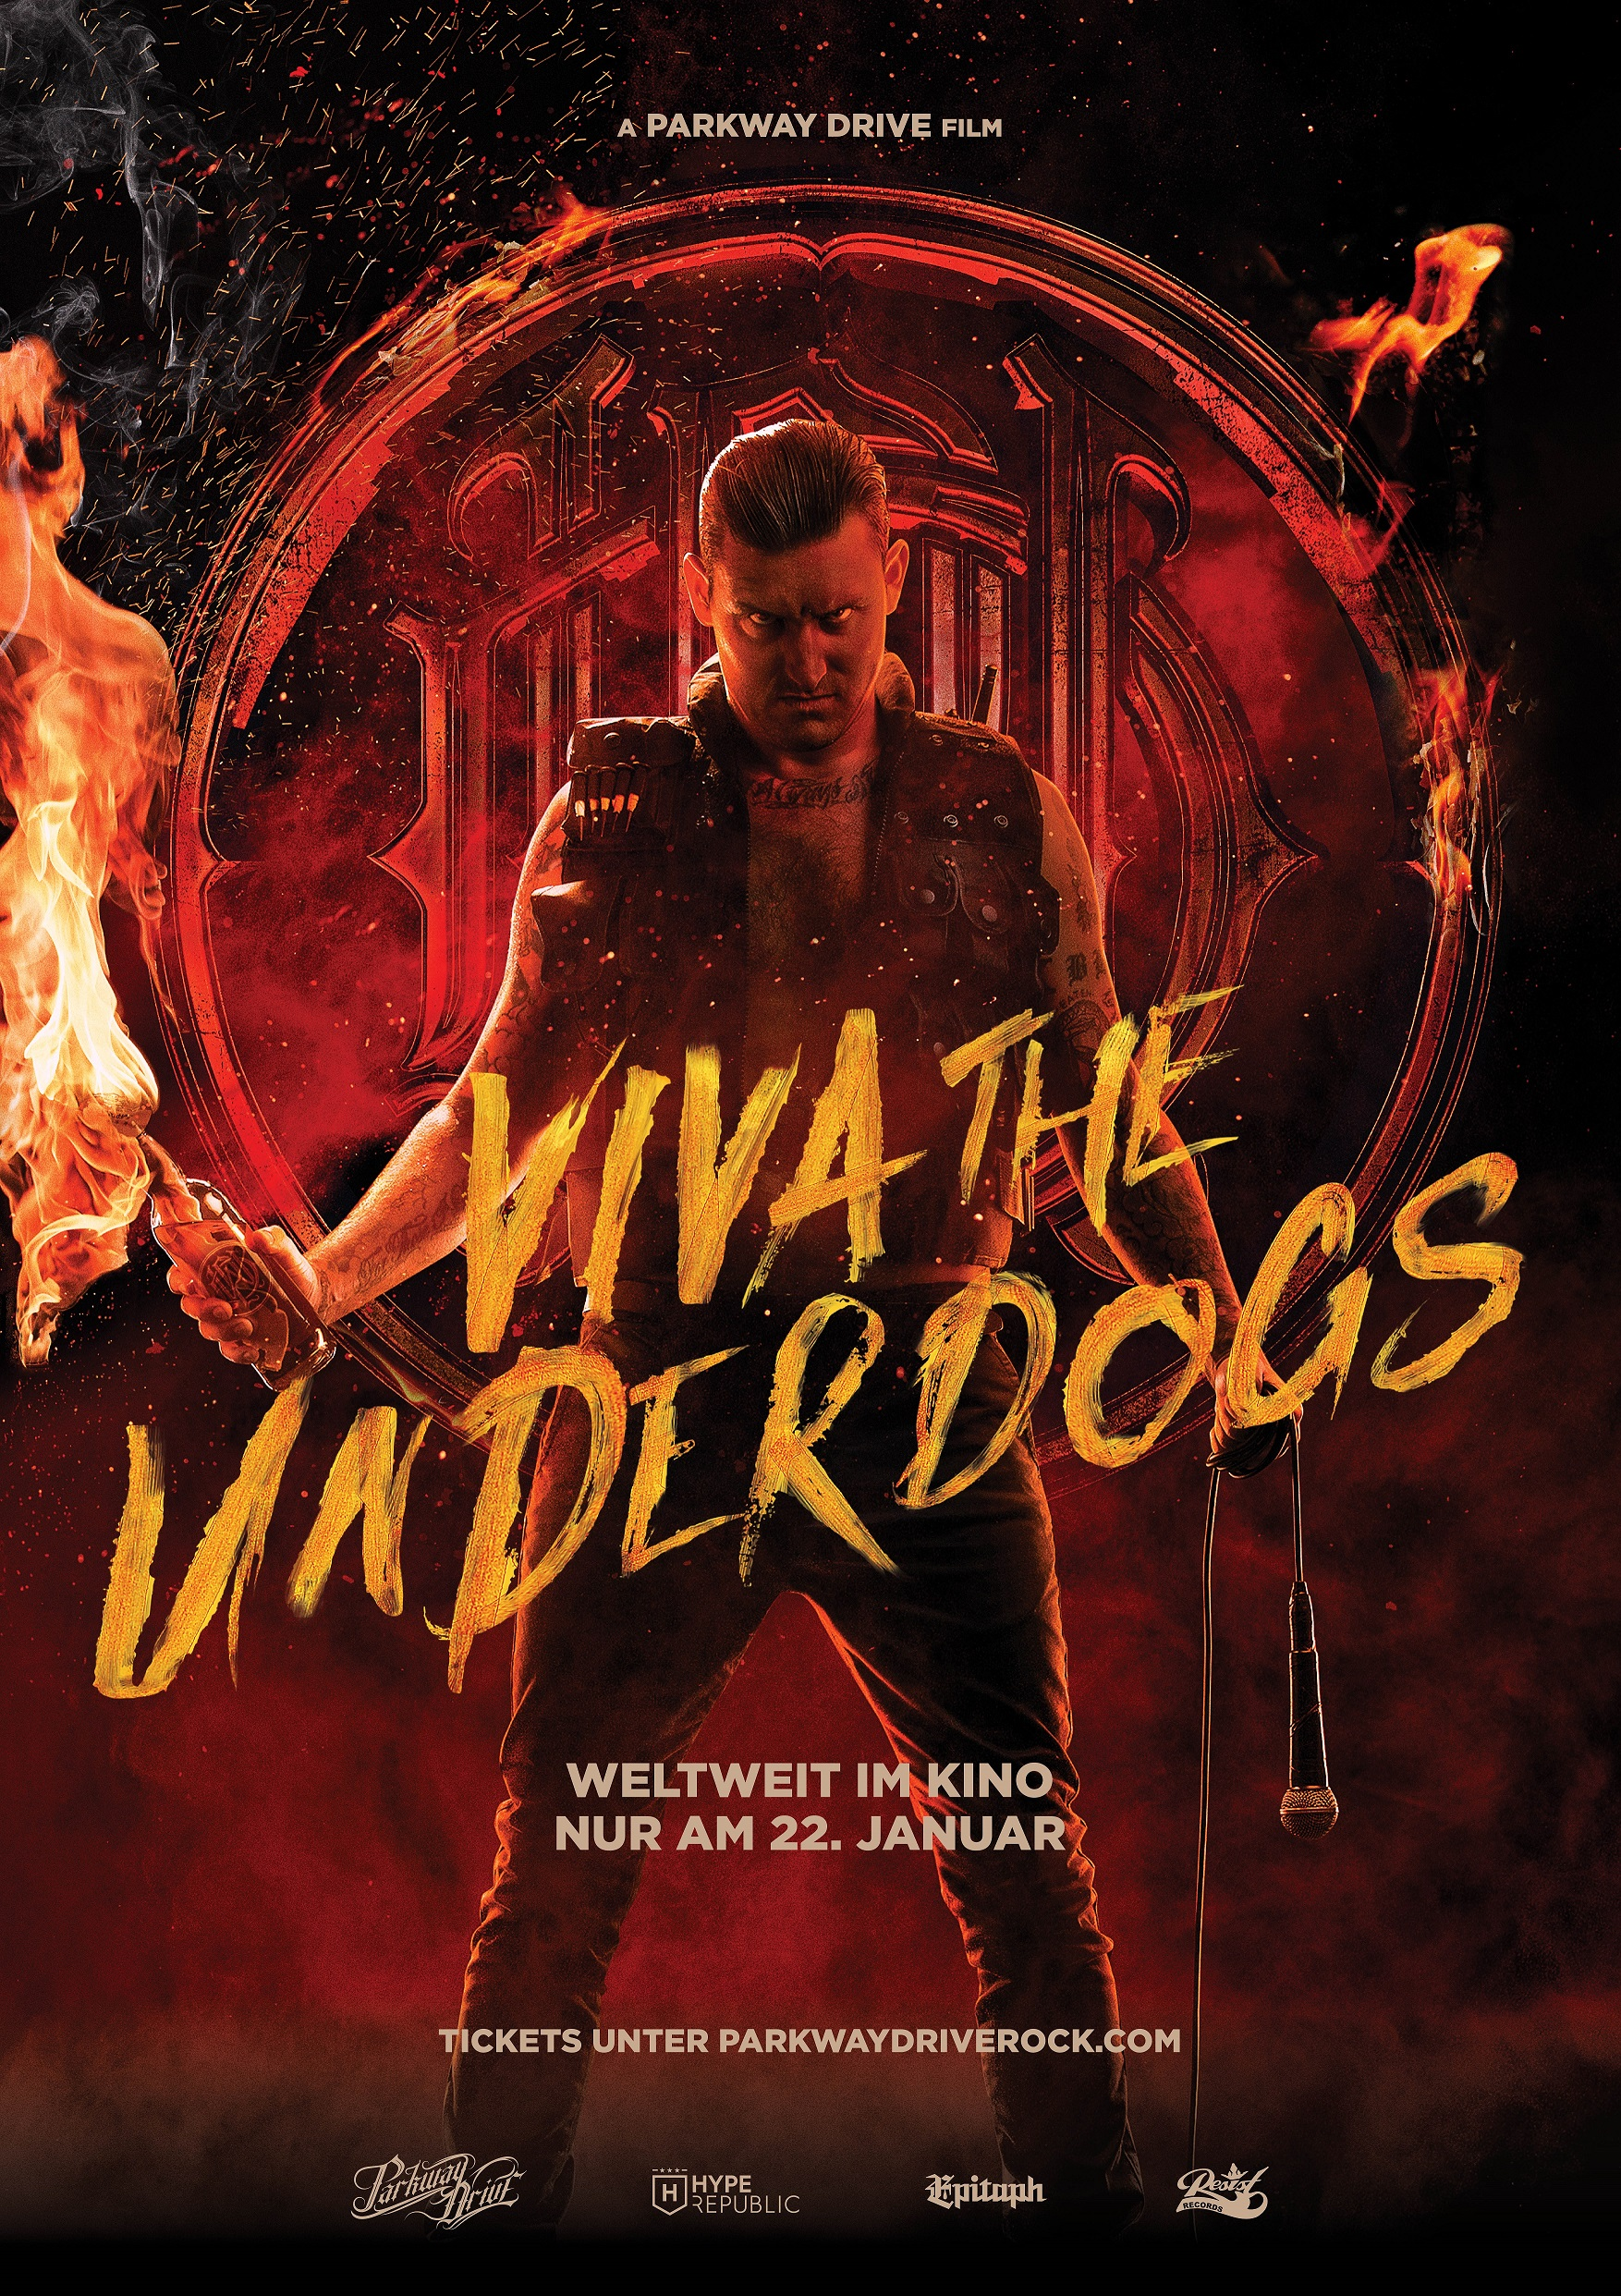 Plakat des Films: Viva The Underdogs - A Film by Parkway Drive